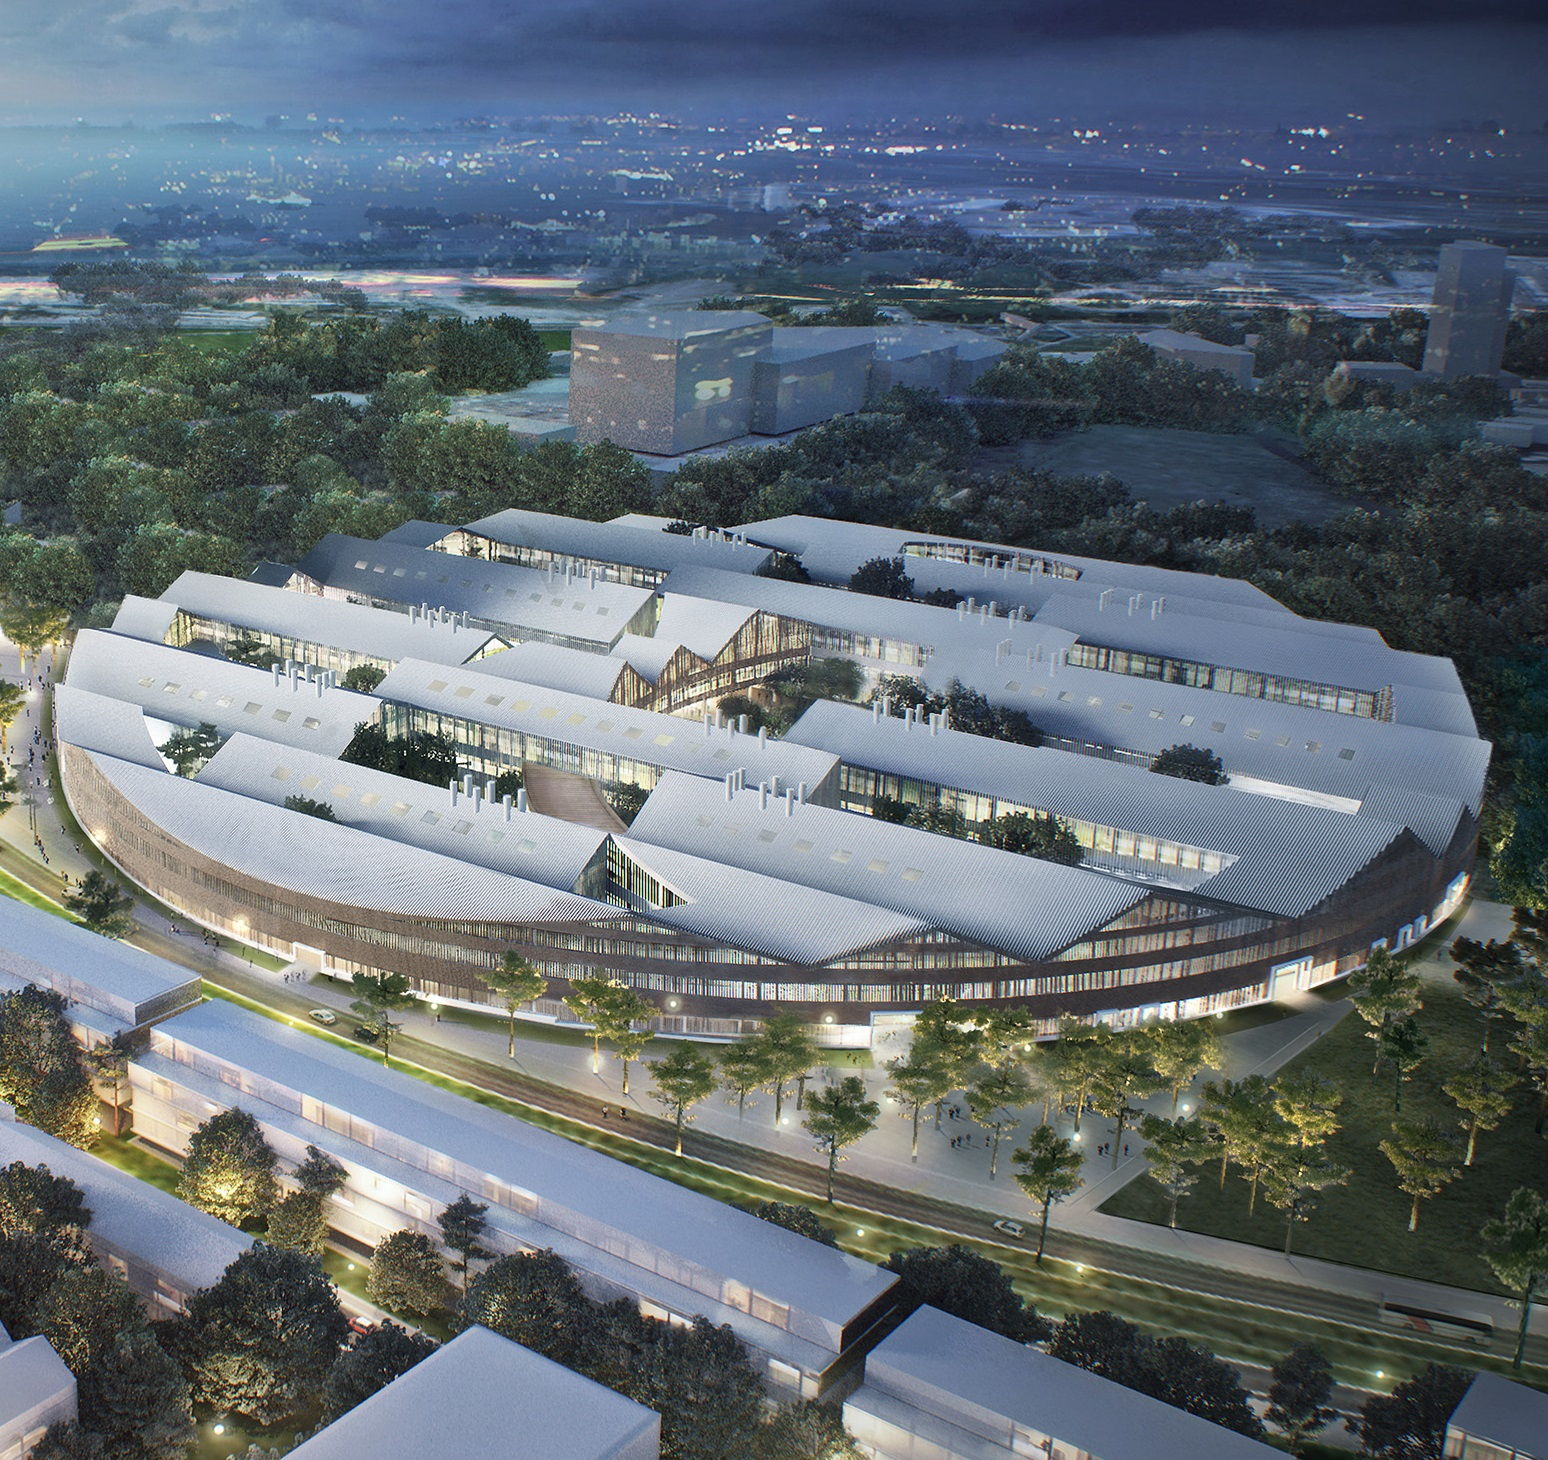 An artistic rendering of Skoltech's new state-of-the-art campus, set to open in 2018. Image: Skoltech.